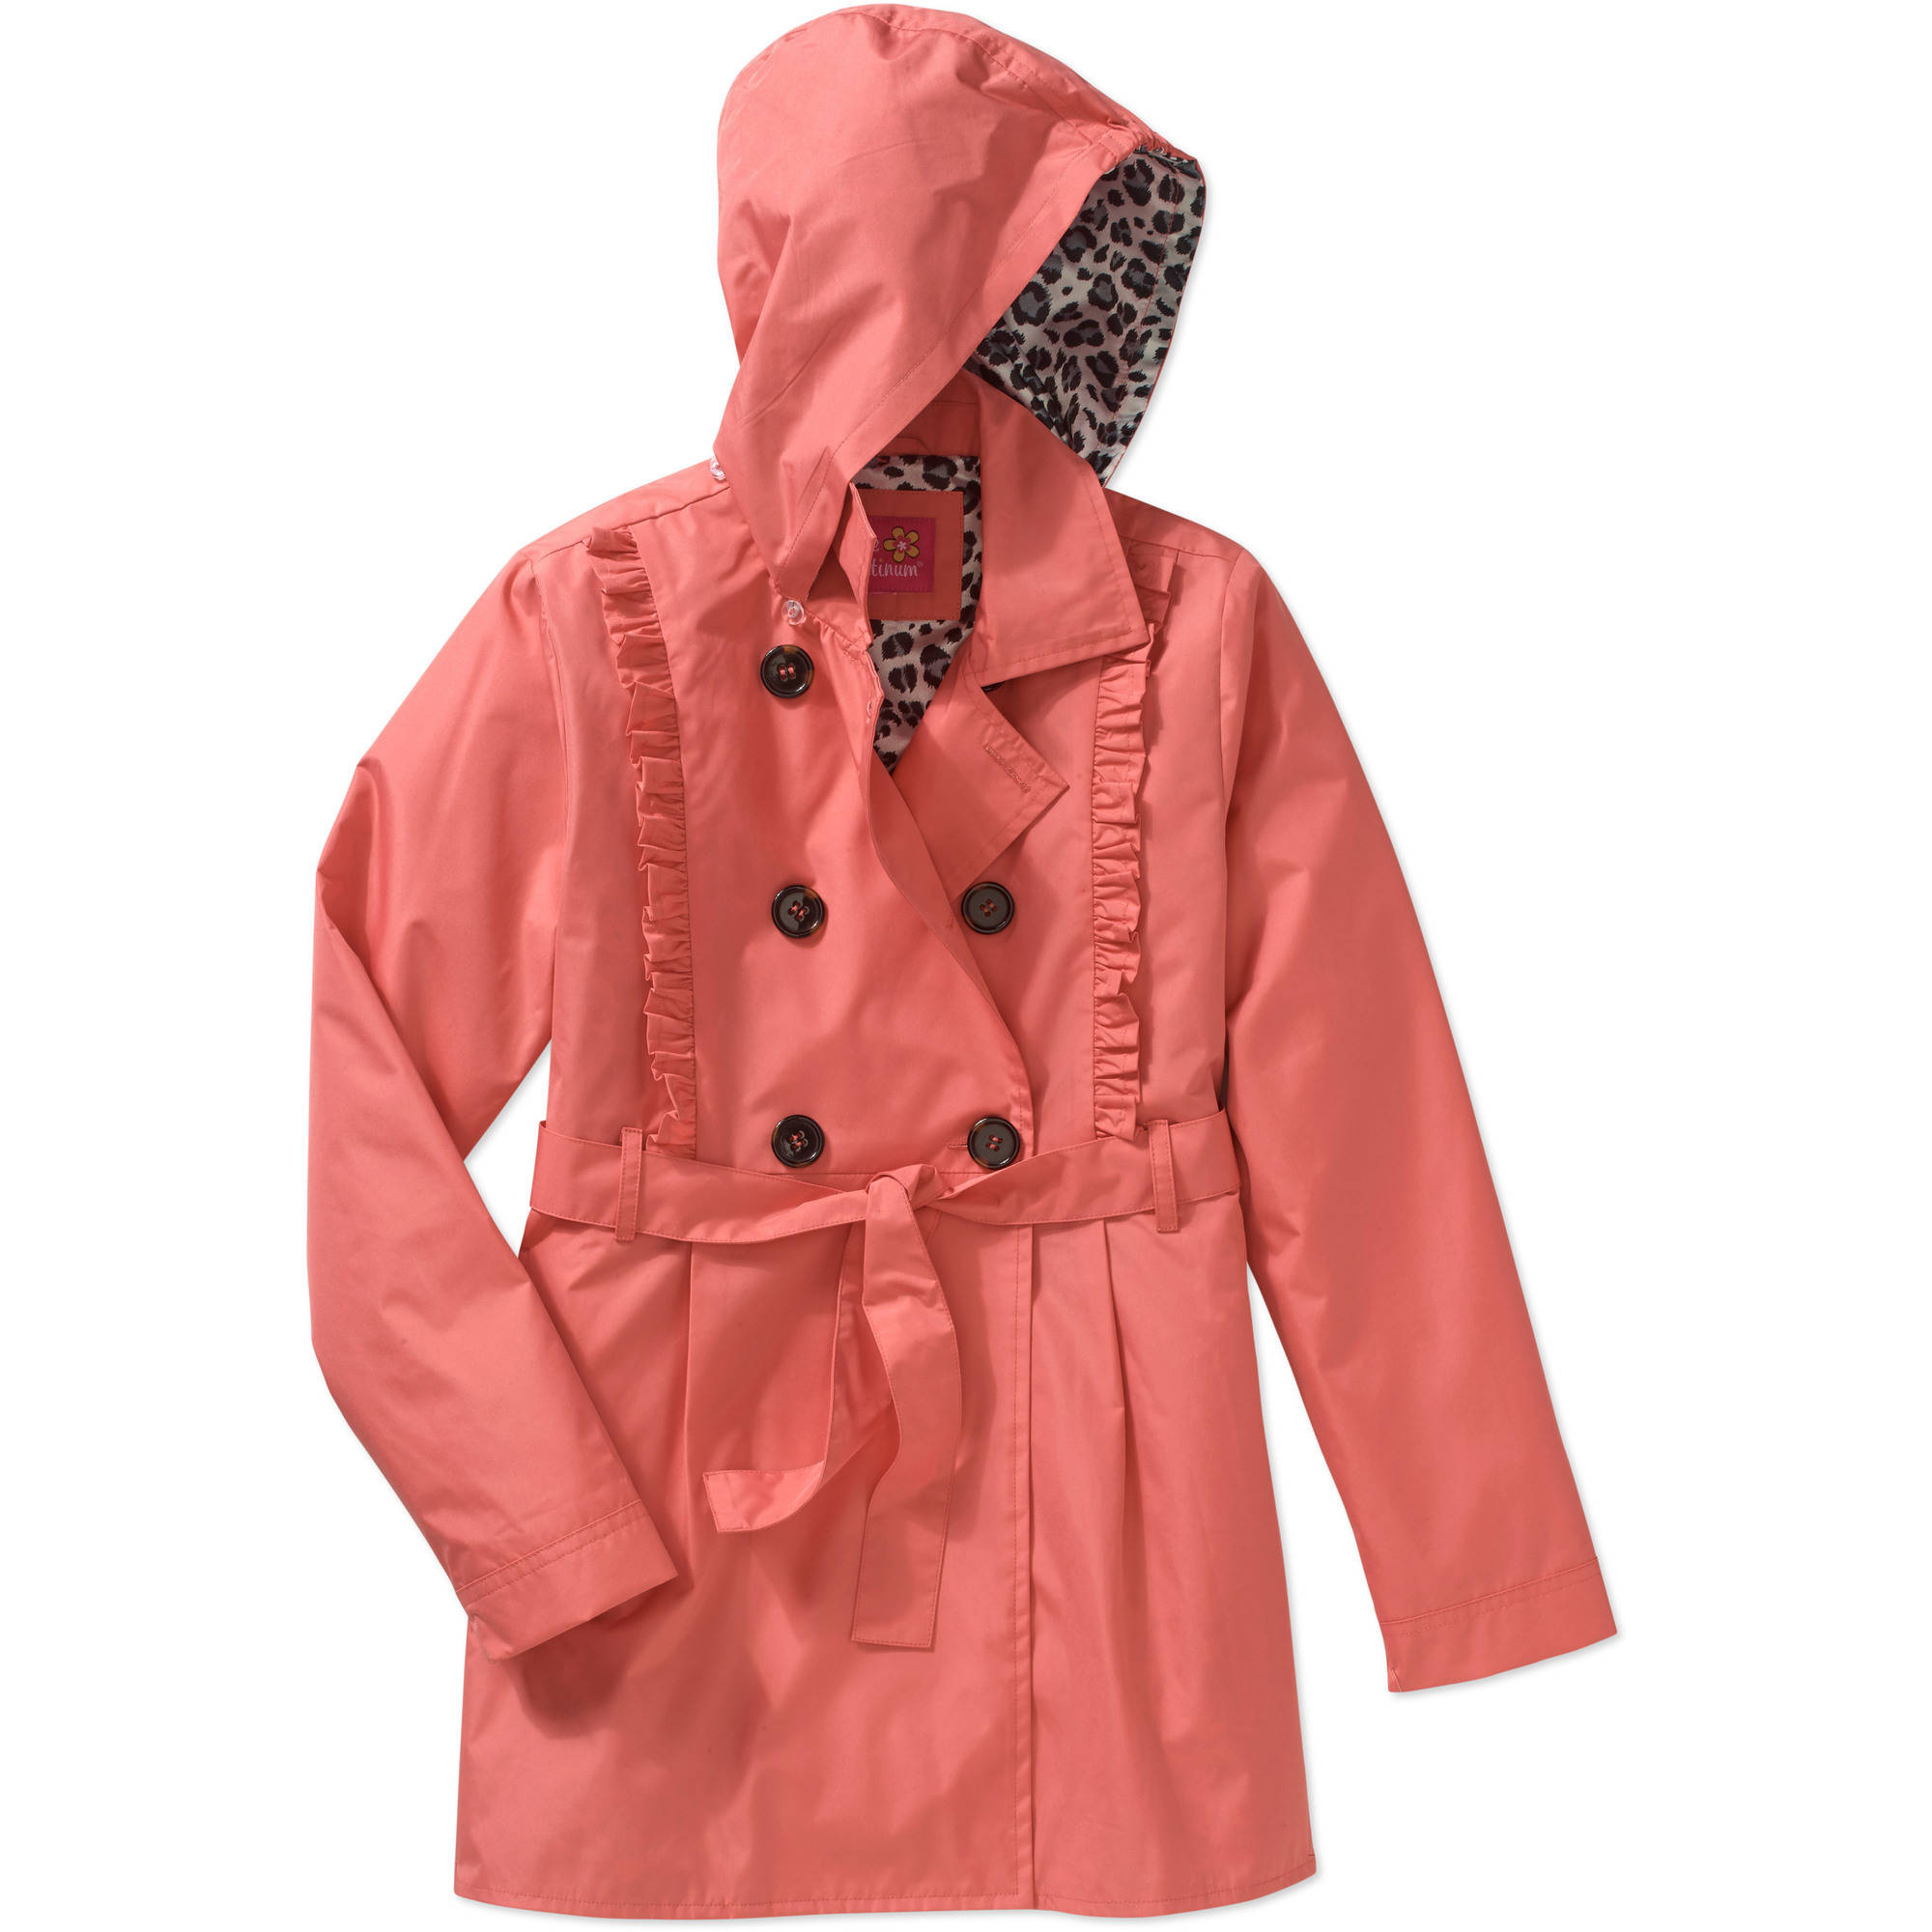 Pink Platinum Girls' Ruffle Trench Coat